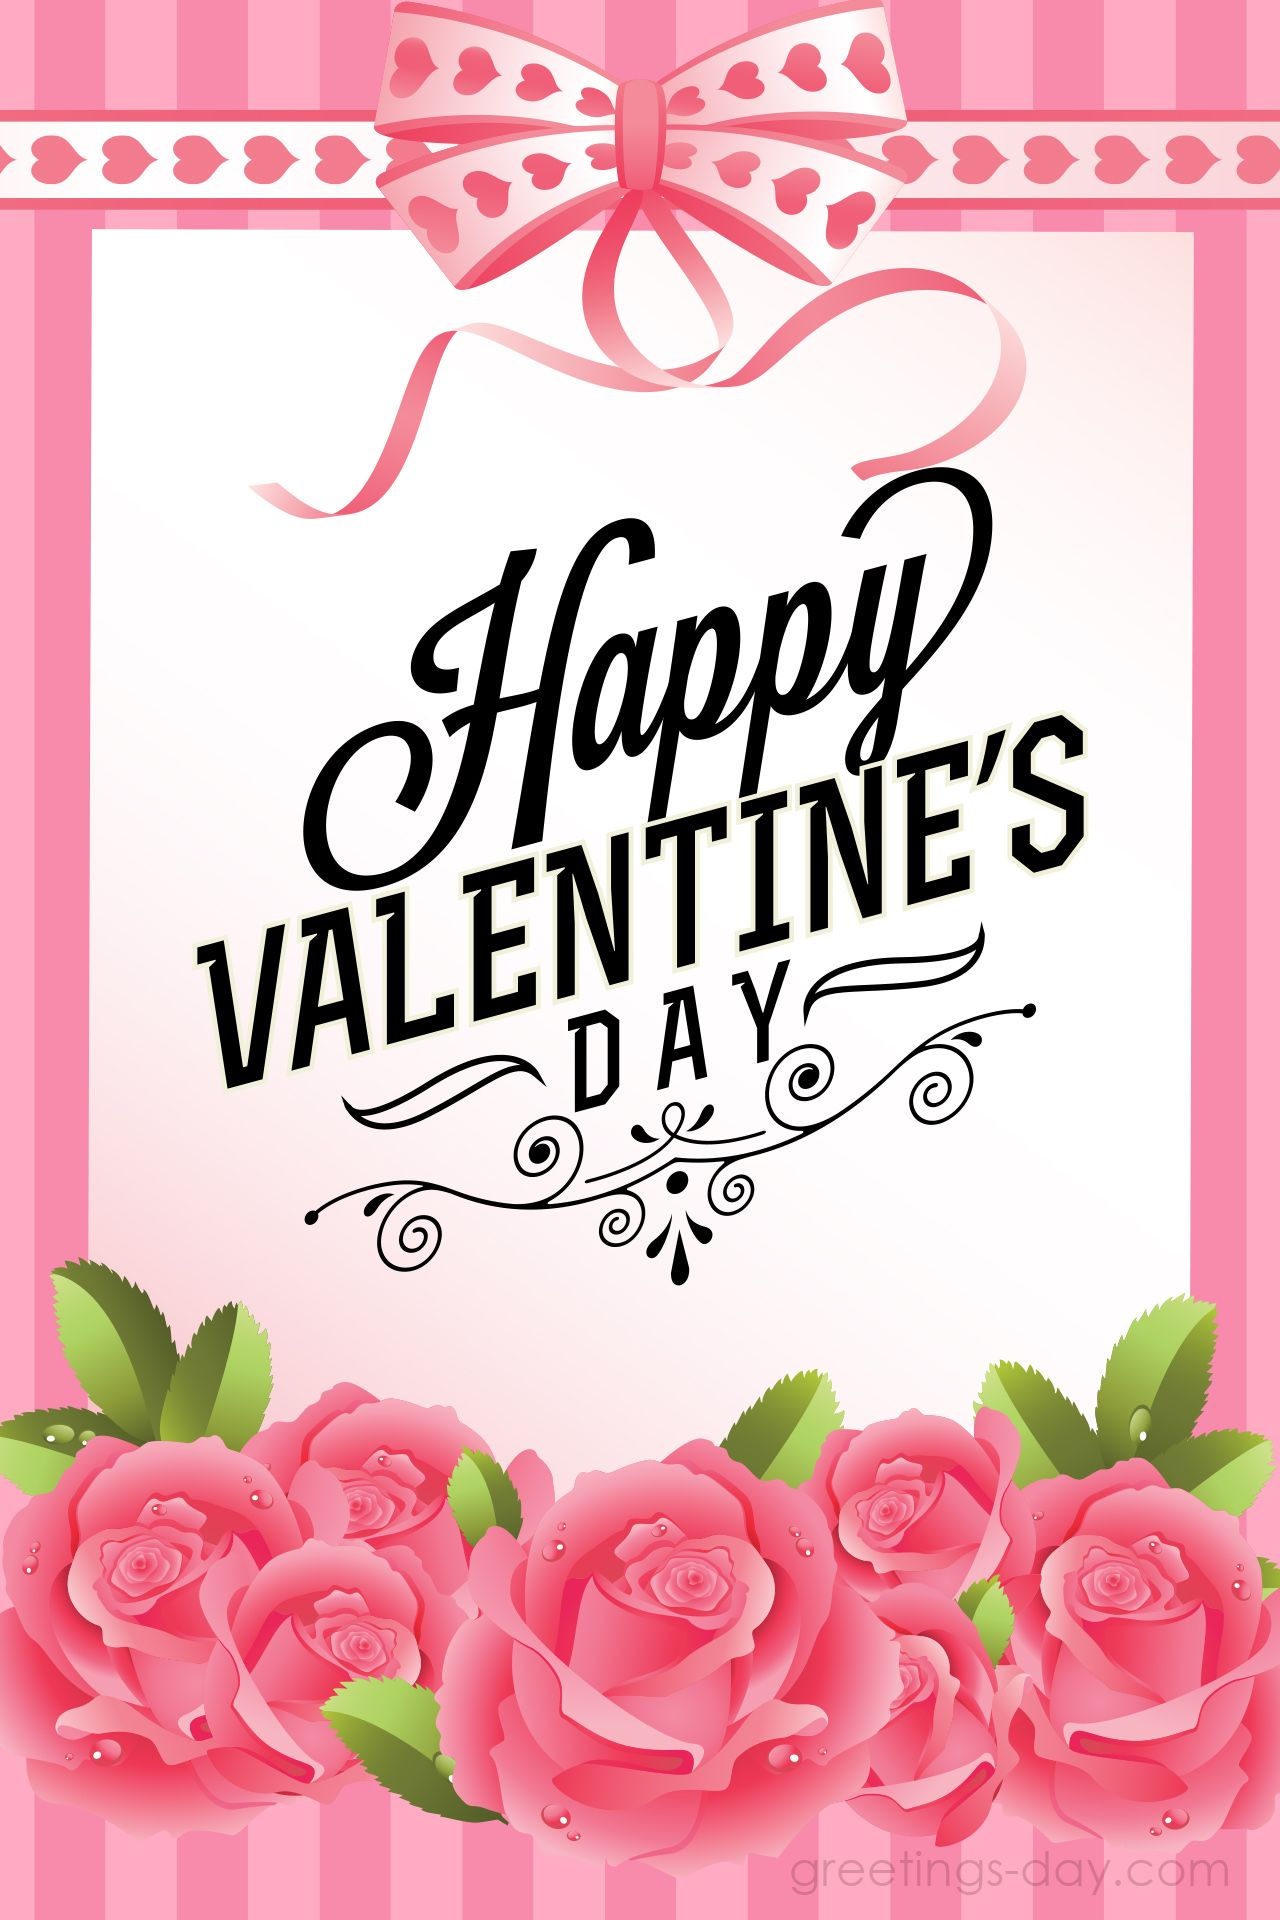 Valentines Day Quotes For Friends And Family Valentines Day